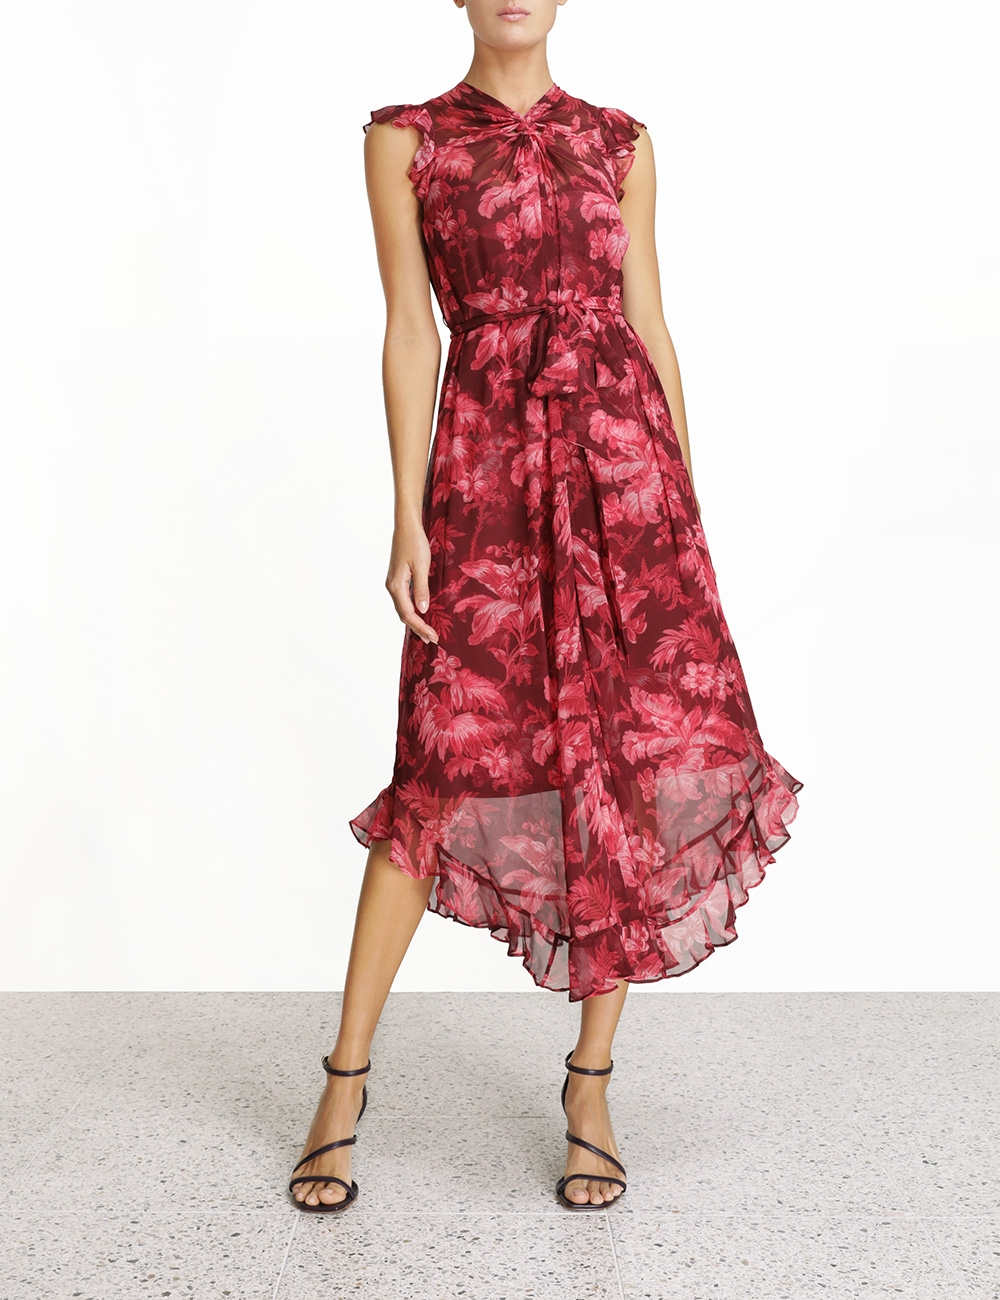 Ladybeetle Twist Flutter Dress